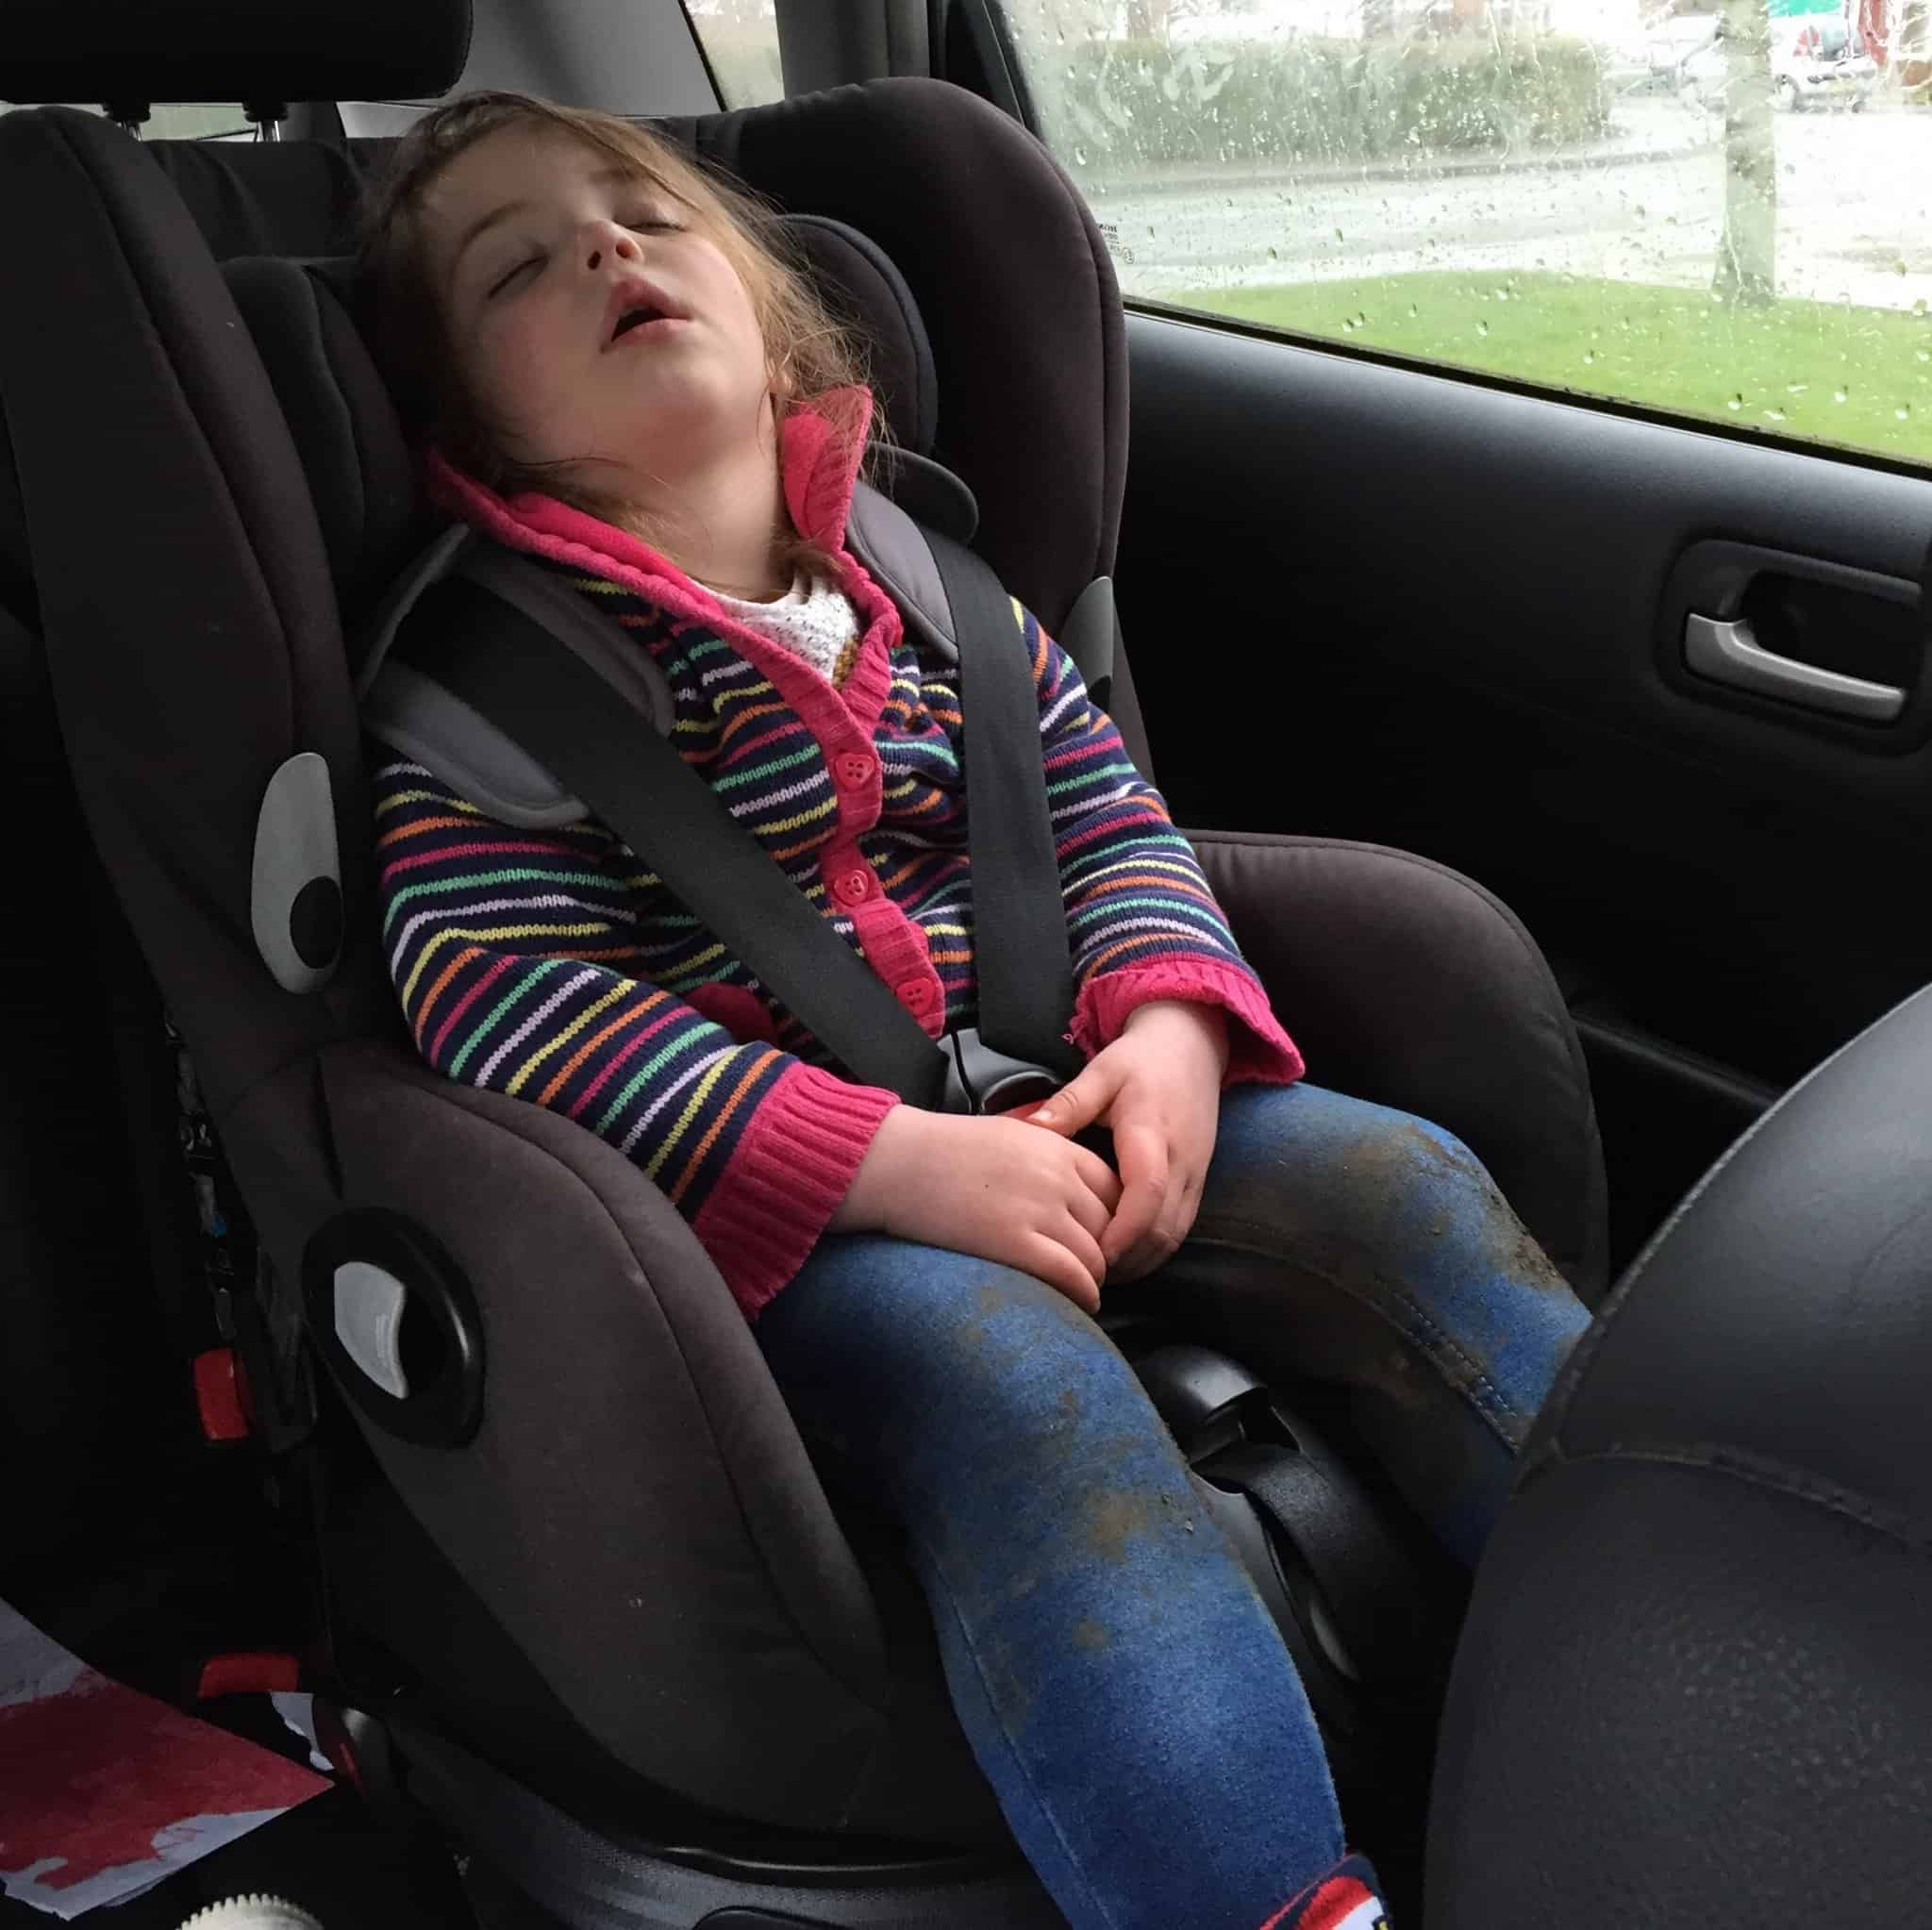 Thea asleep after our woodland adventure